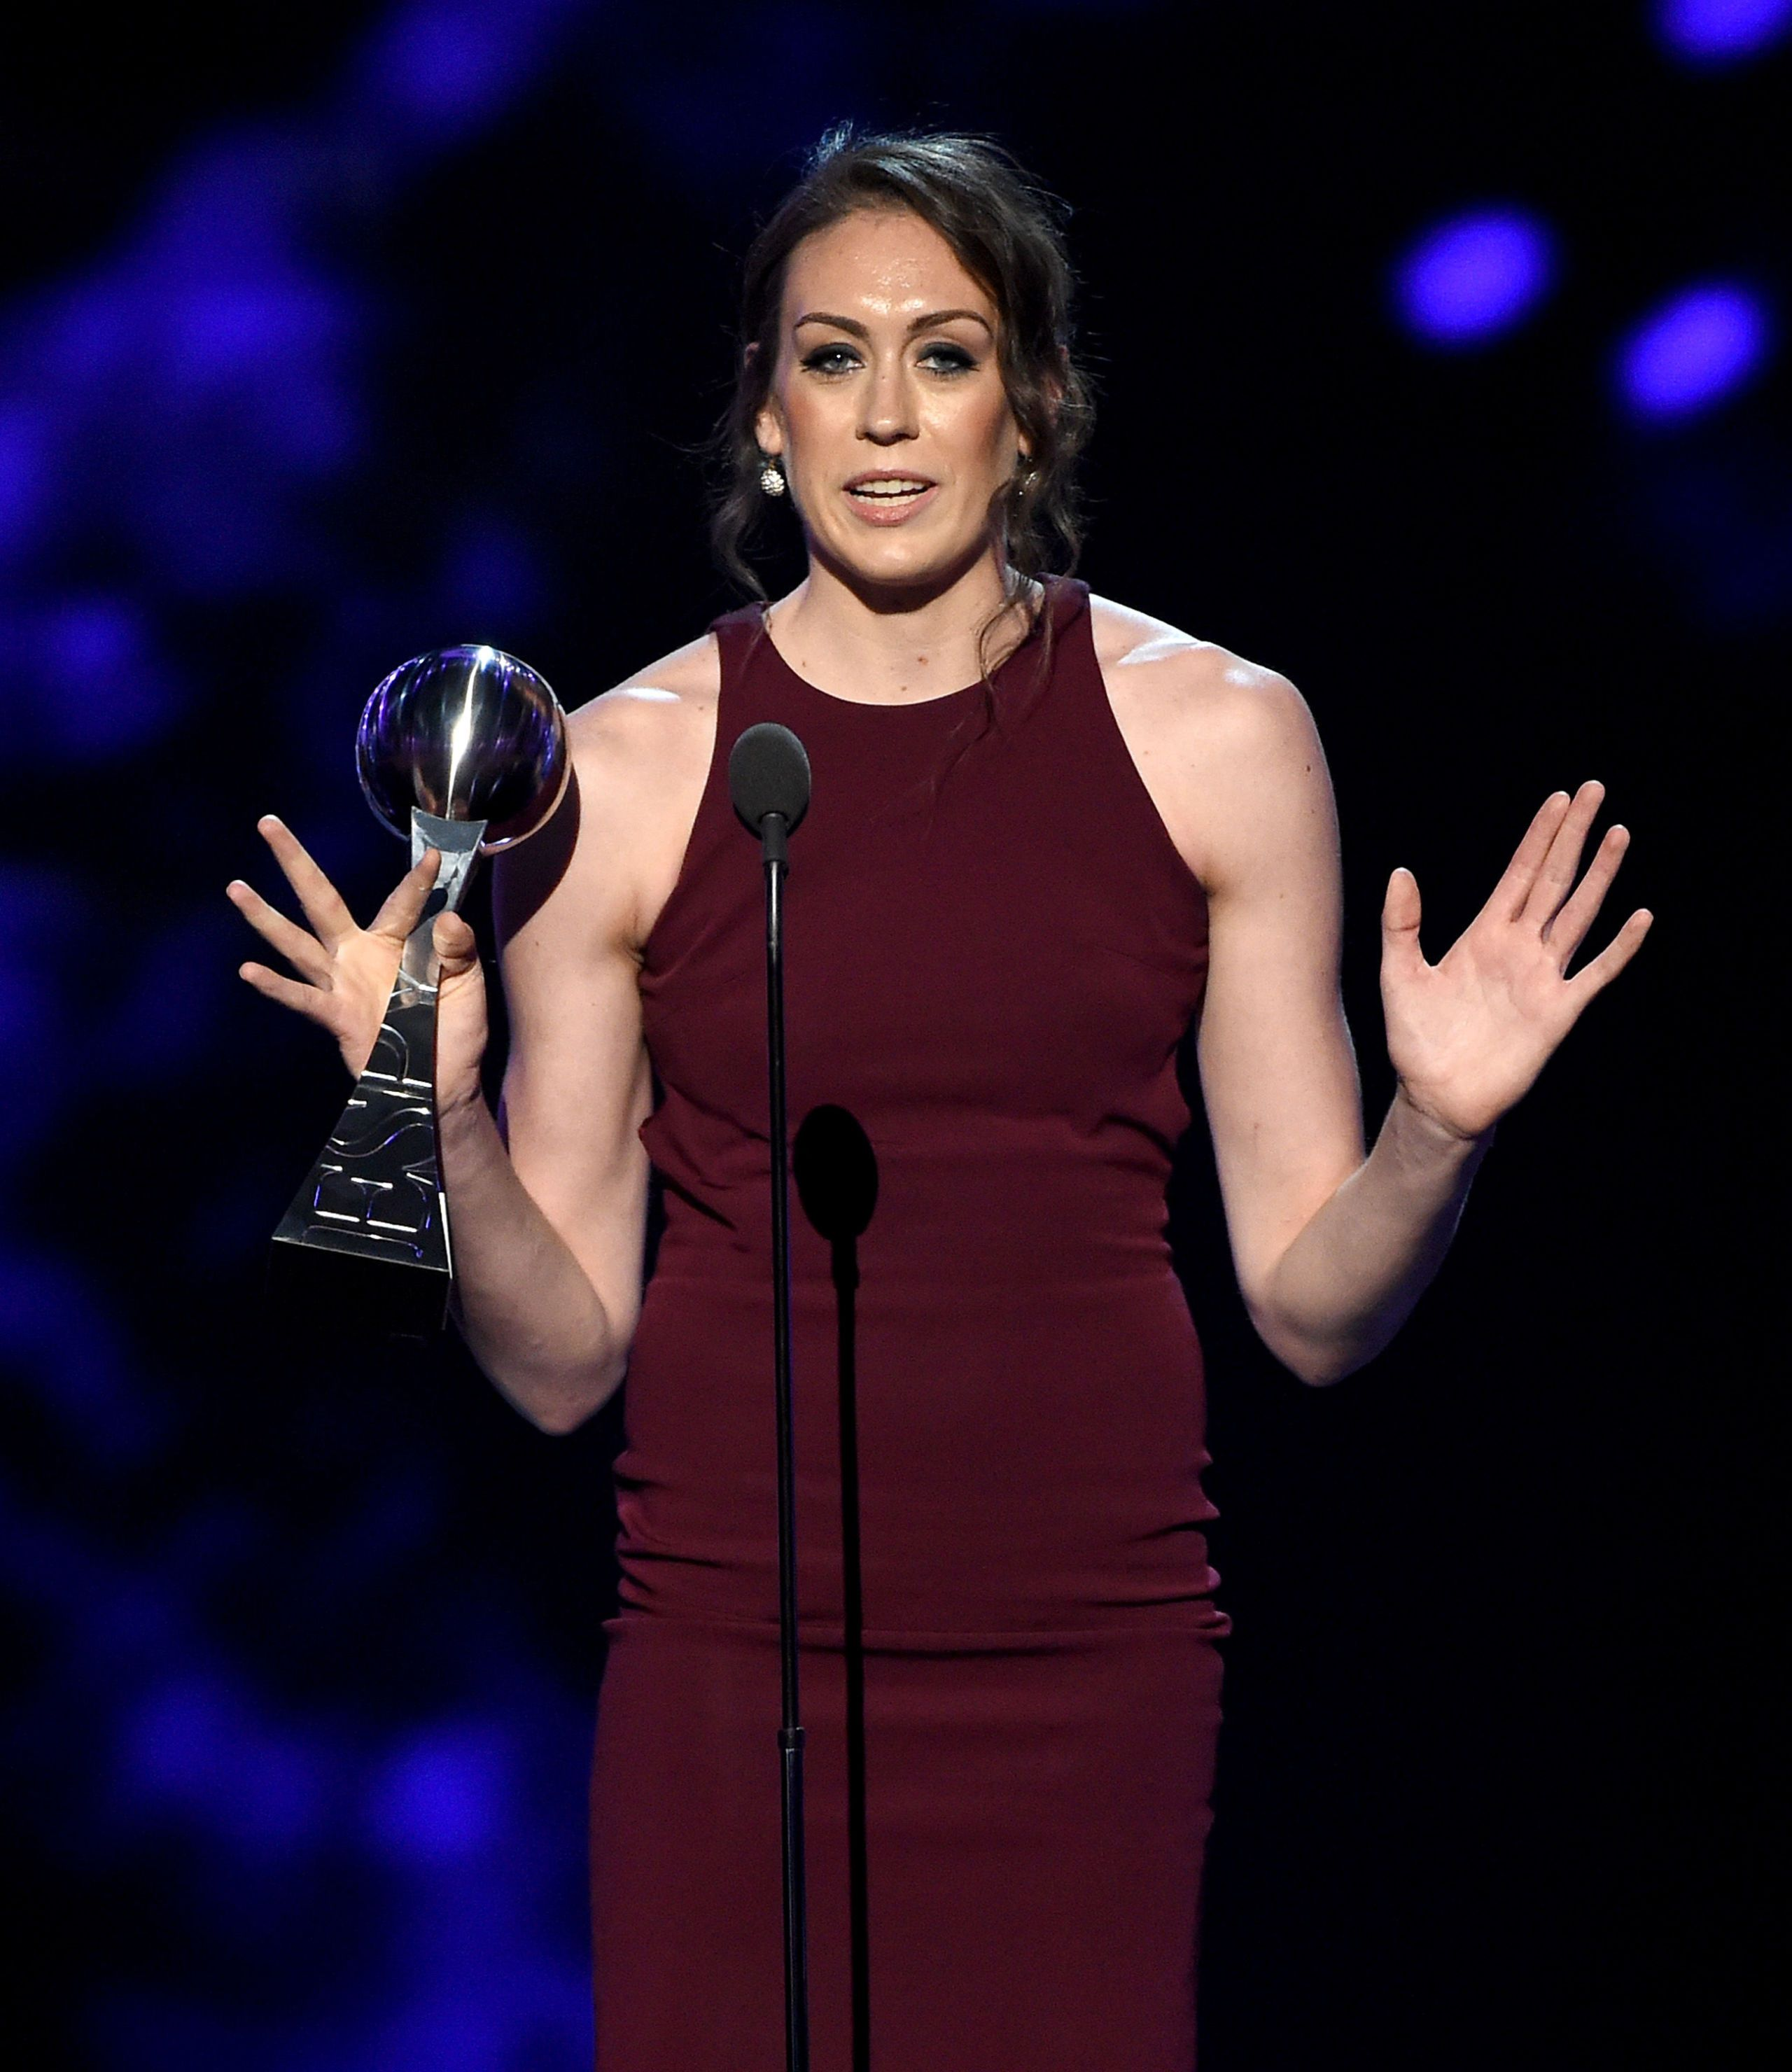 This WNBA Player Just Demanded Gender Equality in Sports at the ESPYS